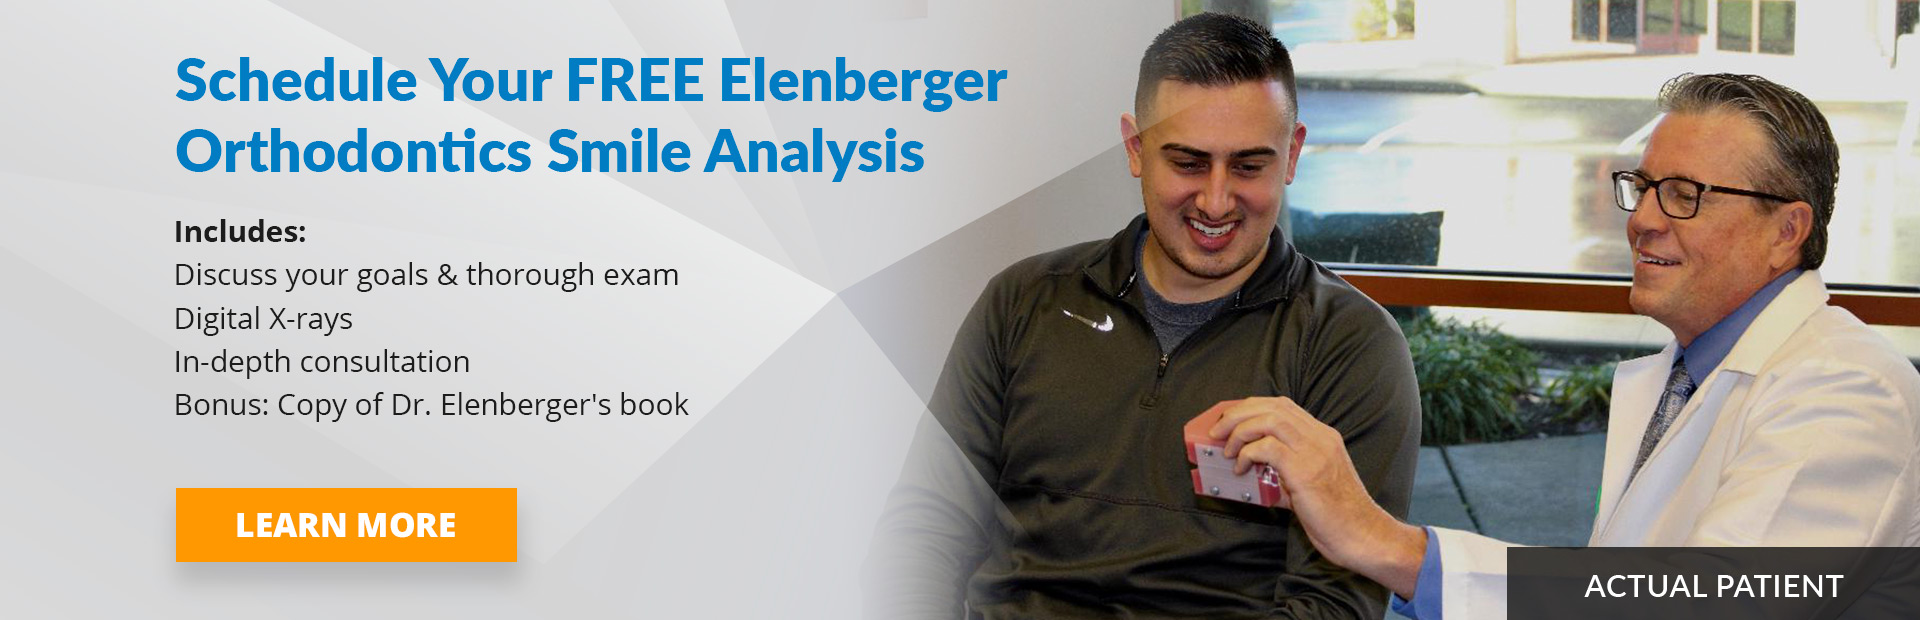 elenberger orthodontics smile analysis